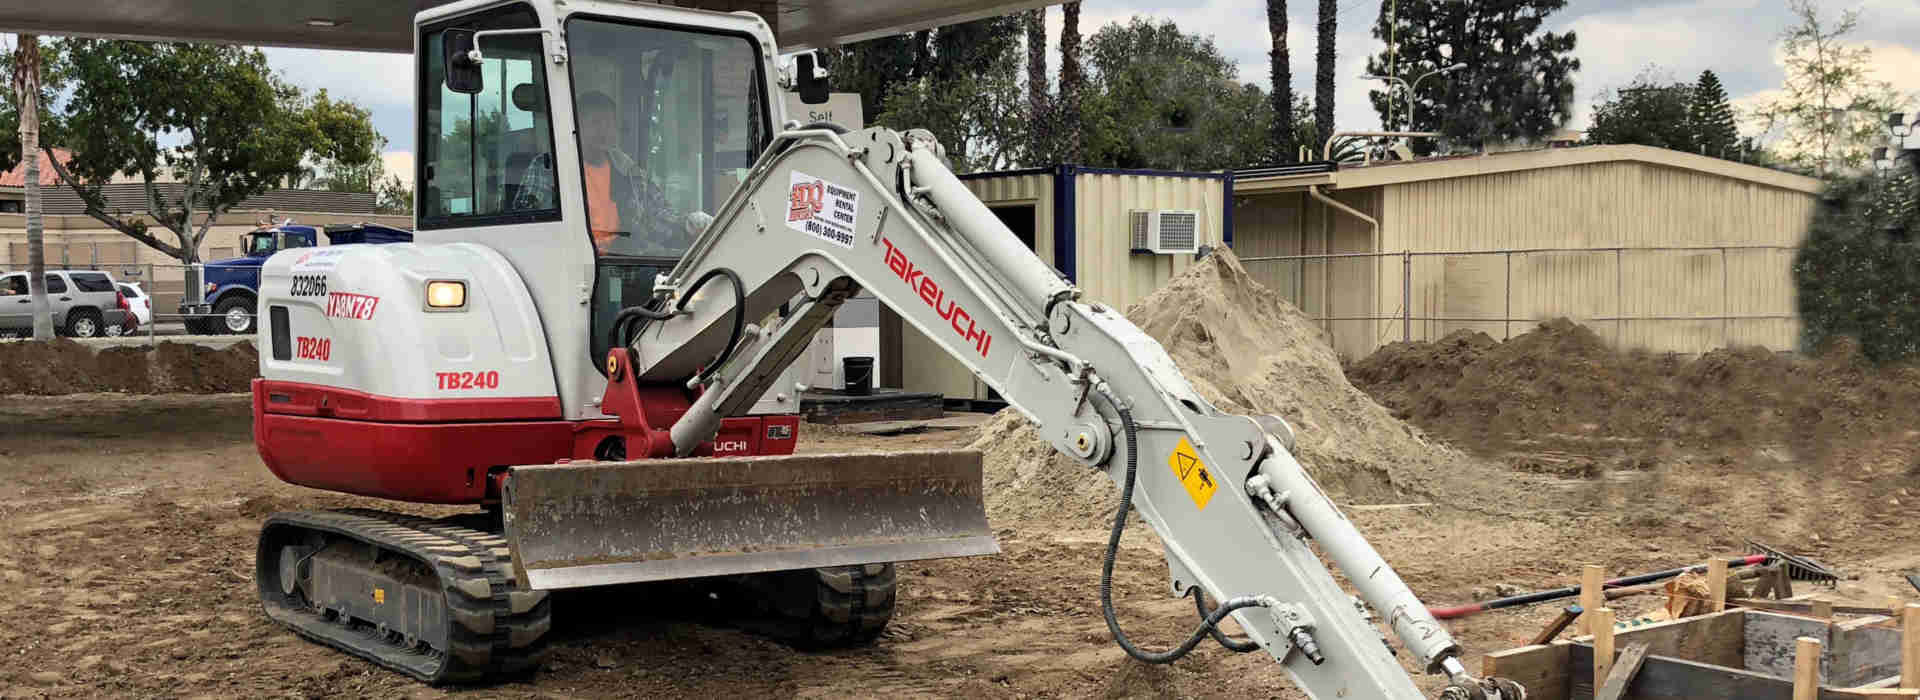 Tool Rentals, Equipment Rental For Construction and